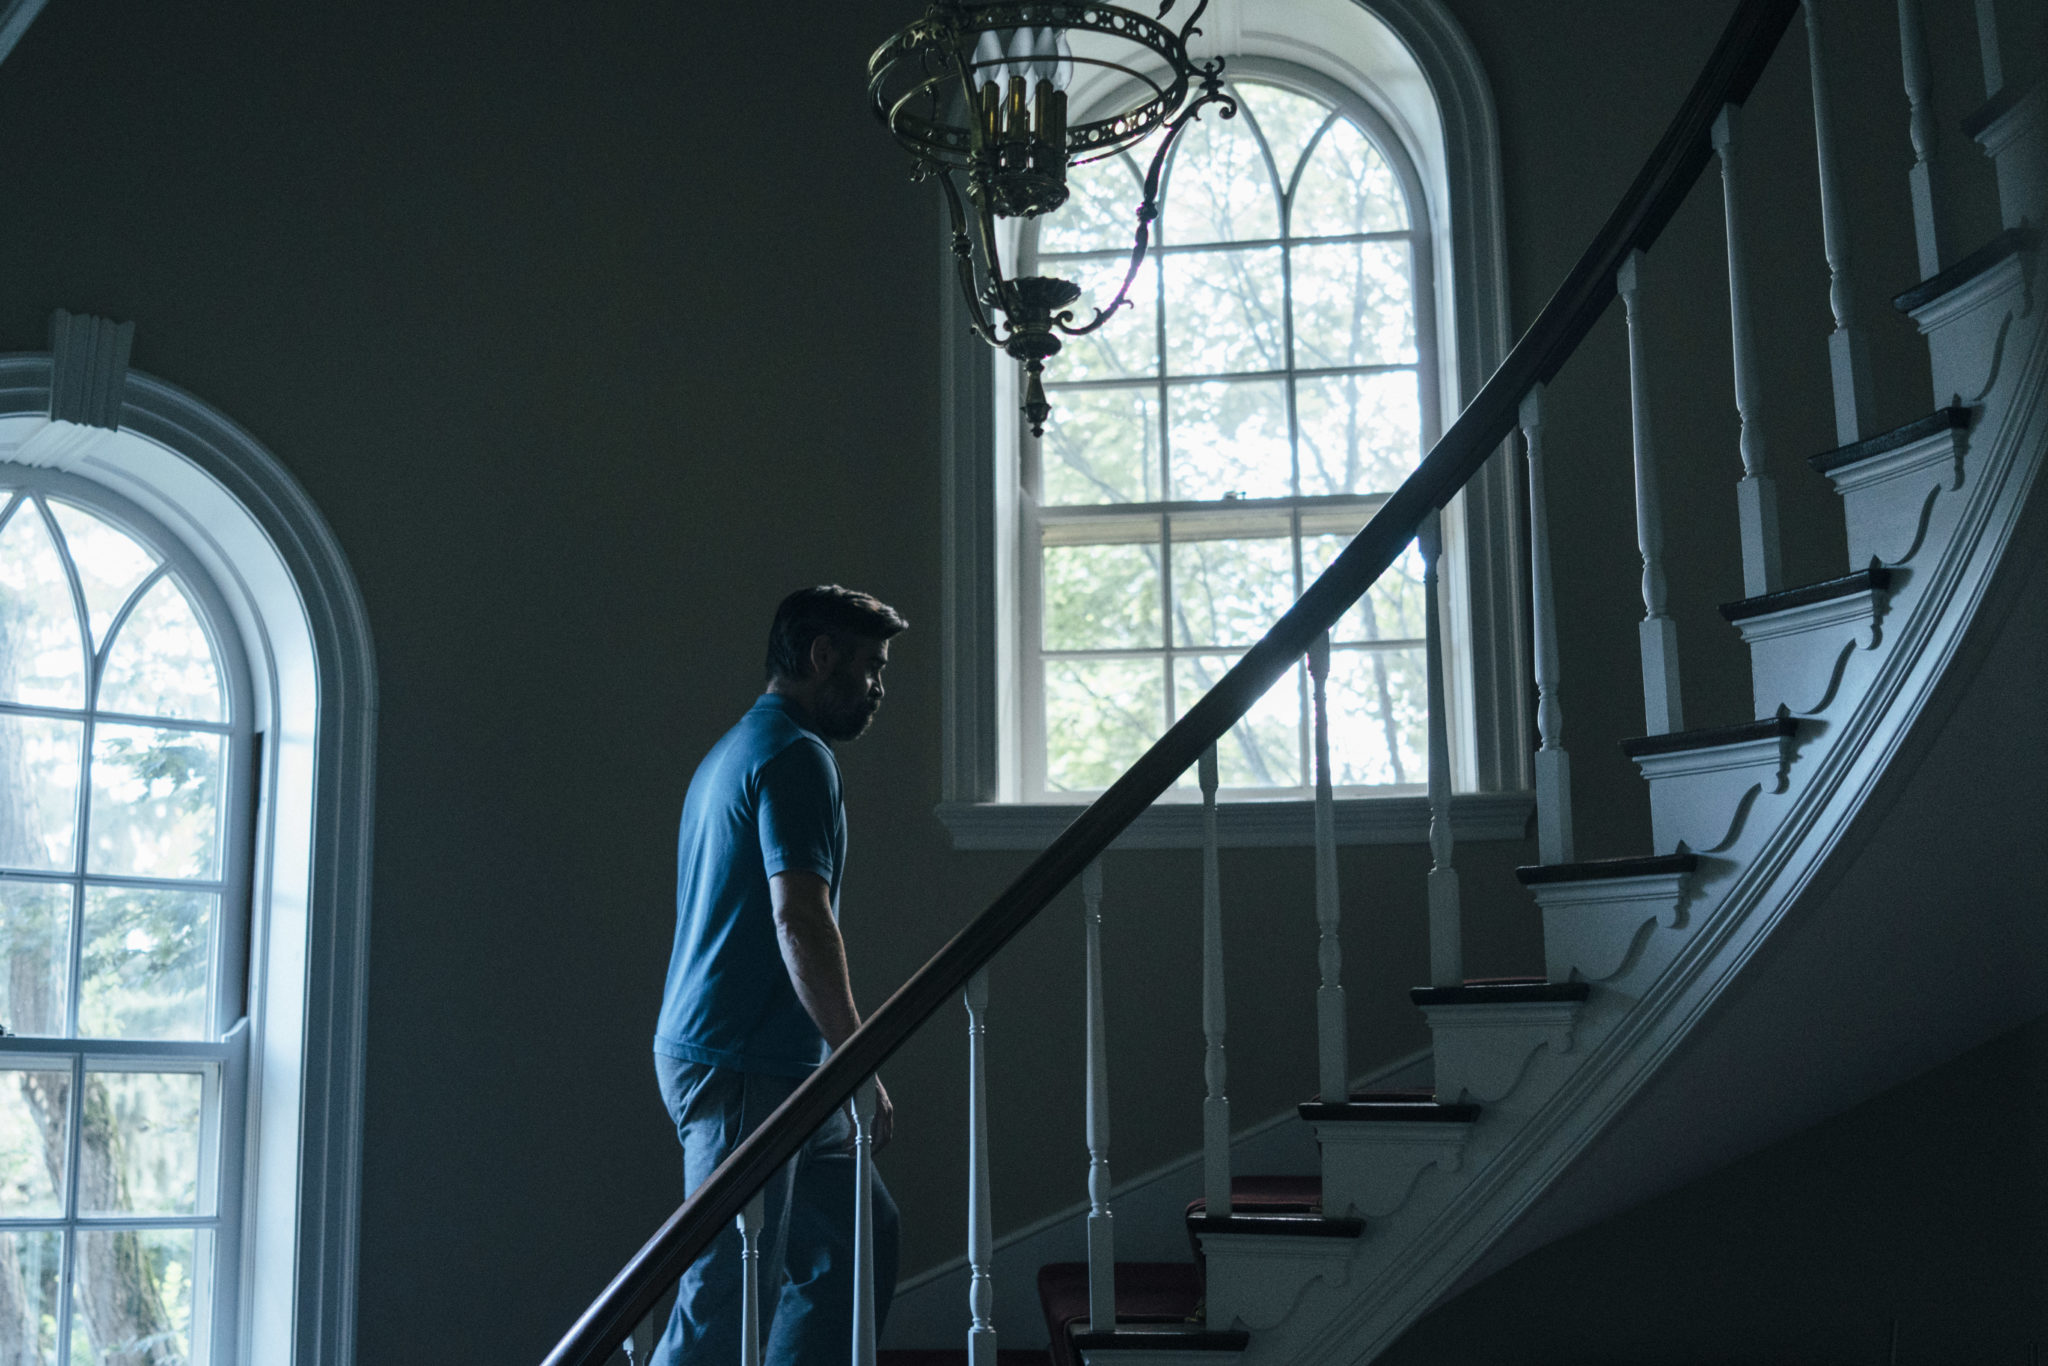 colin-farrell-in-the-killing-of-a-sacred-deer-by-yorgos-lanthimos